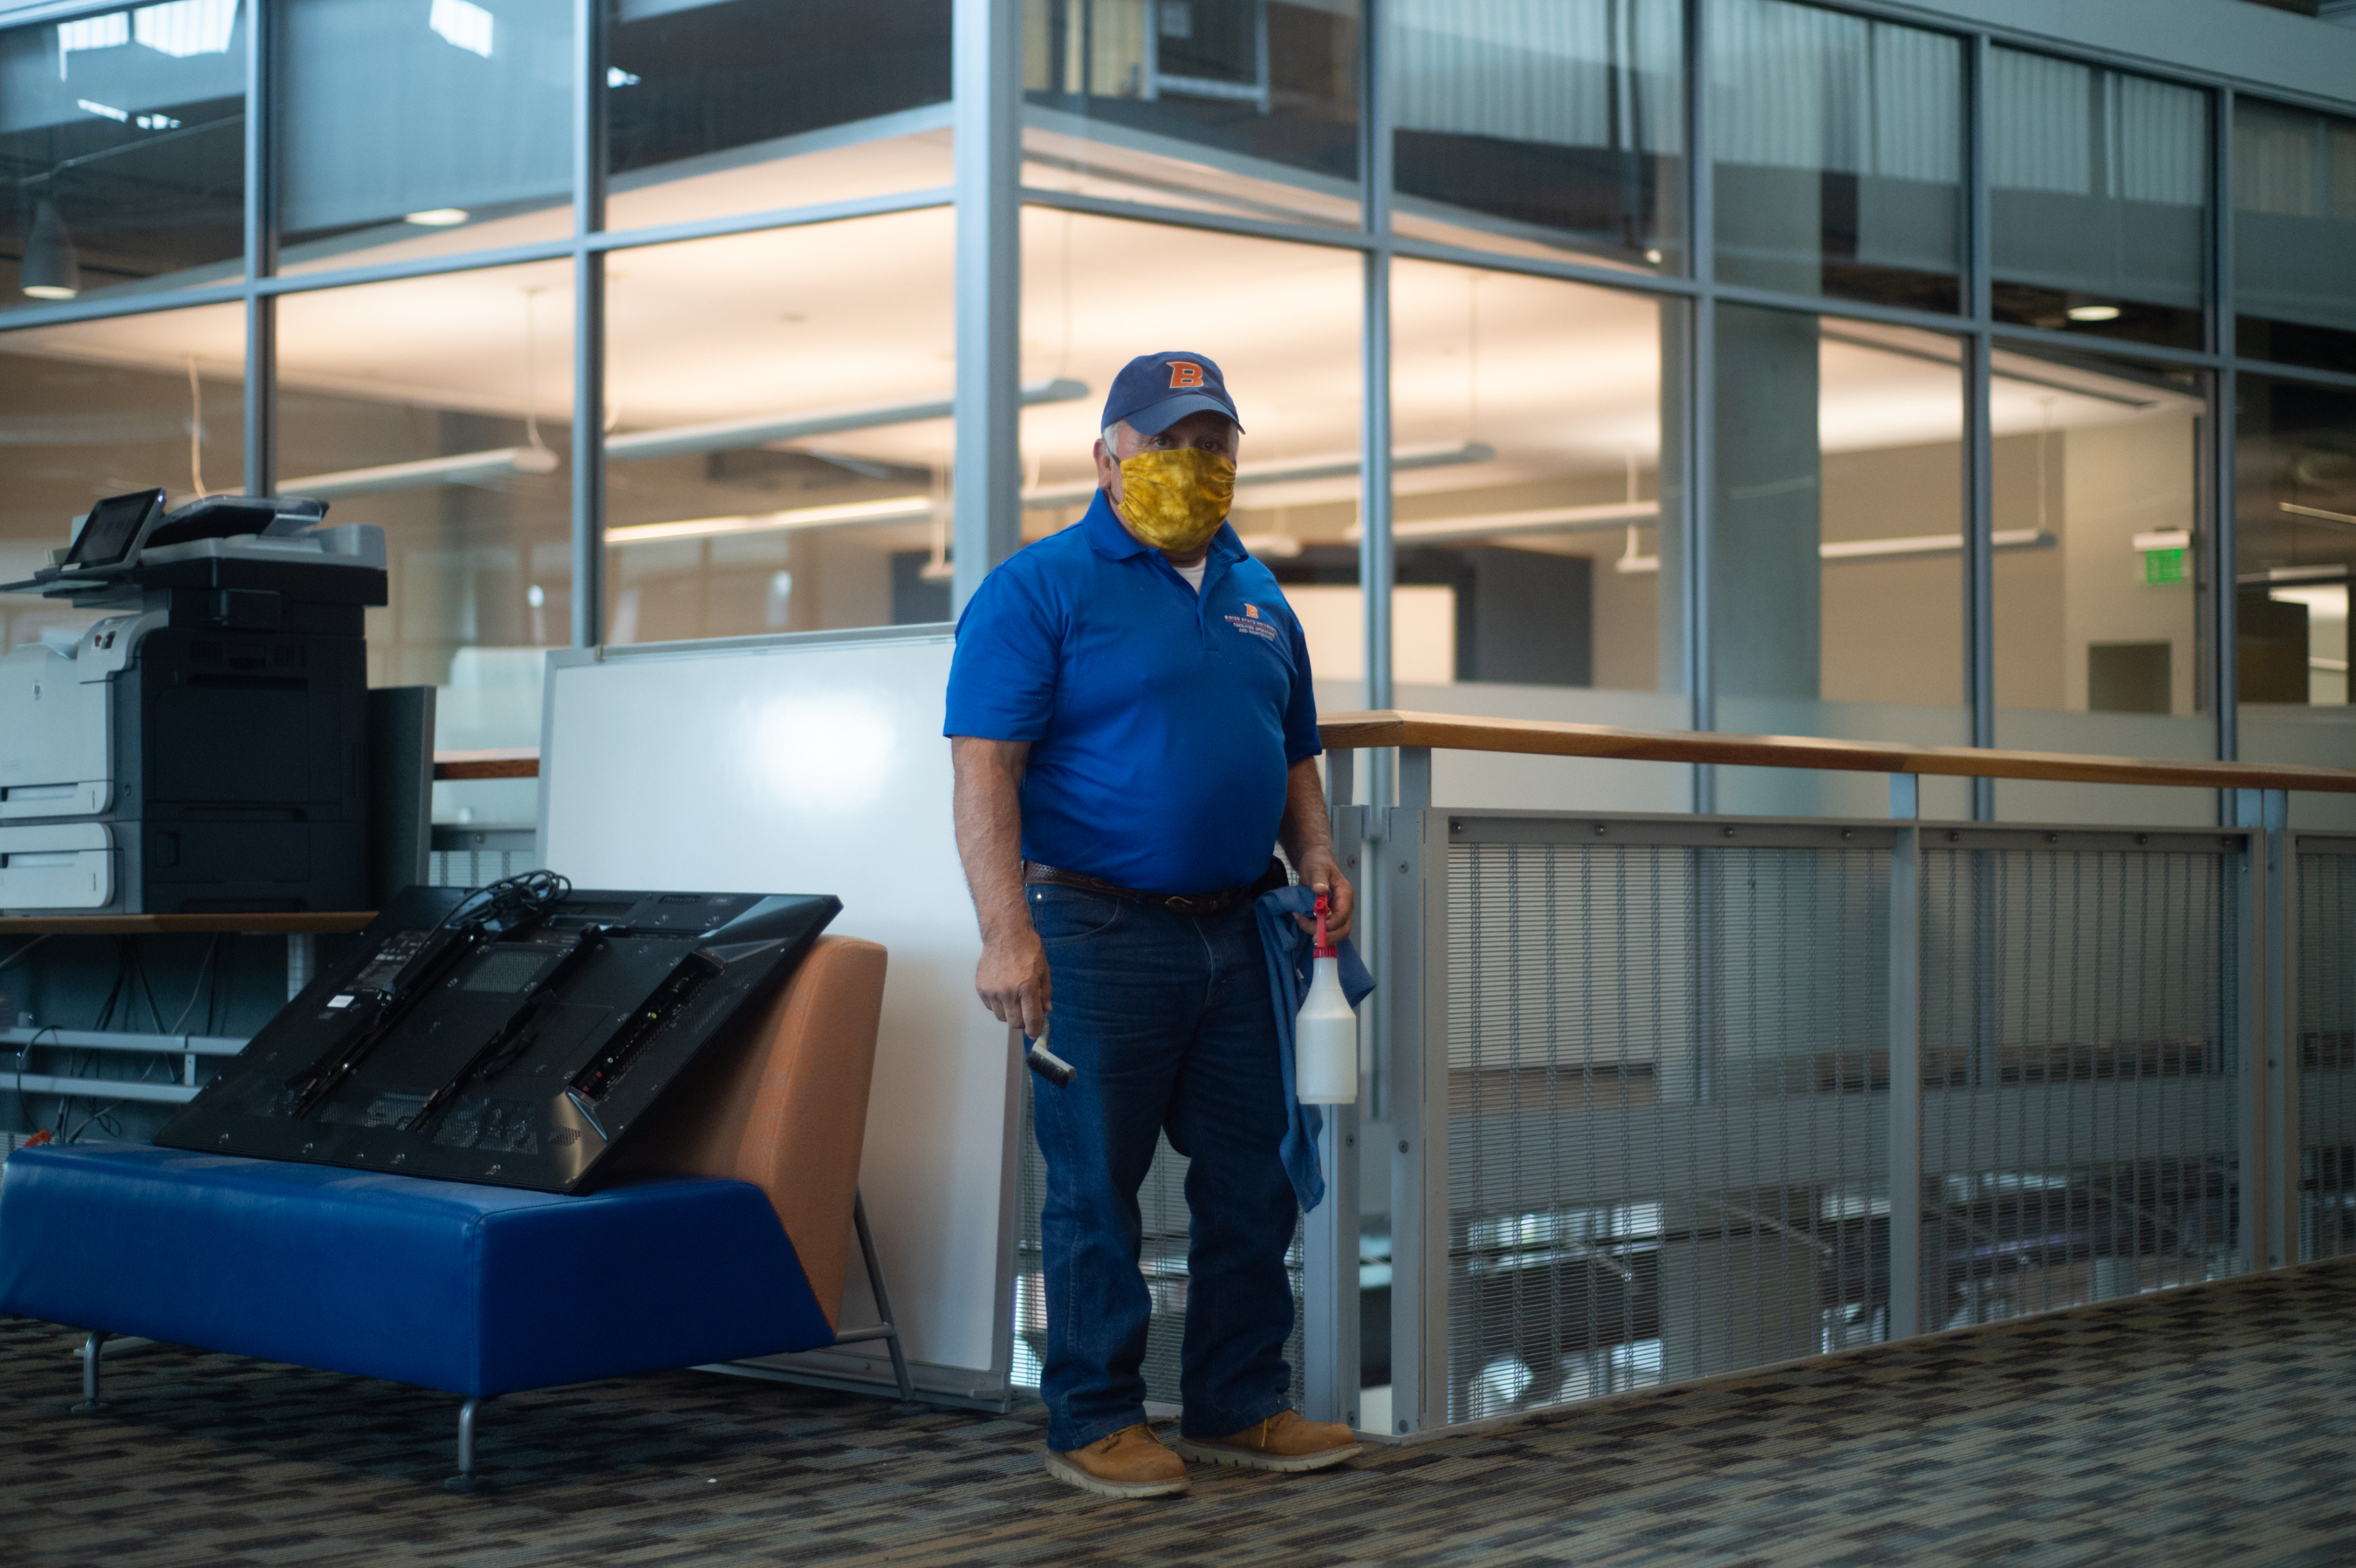 Ernie Rivera is the campus painting foreman and has been with Boise State for more than 12 years. He. is a huge Boise State football fan and can be found tailgating at every home game, sporting the orange and blue with his family and friends. Photo, Patrick Sweeney.